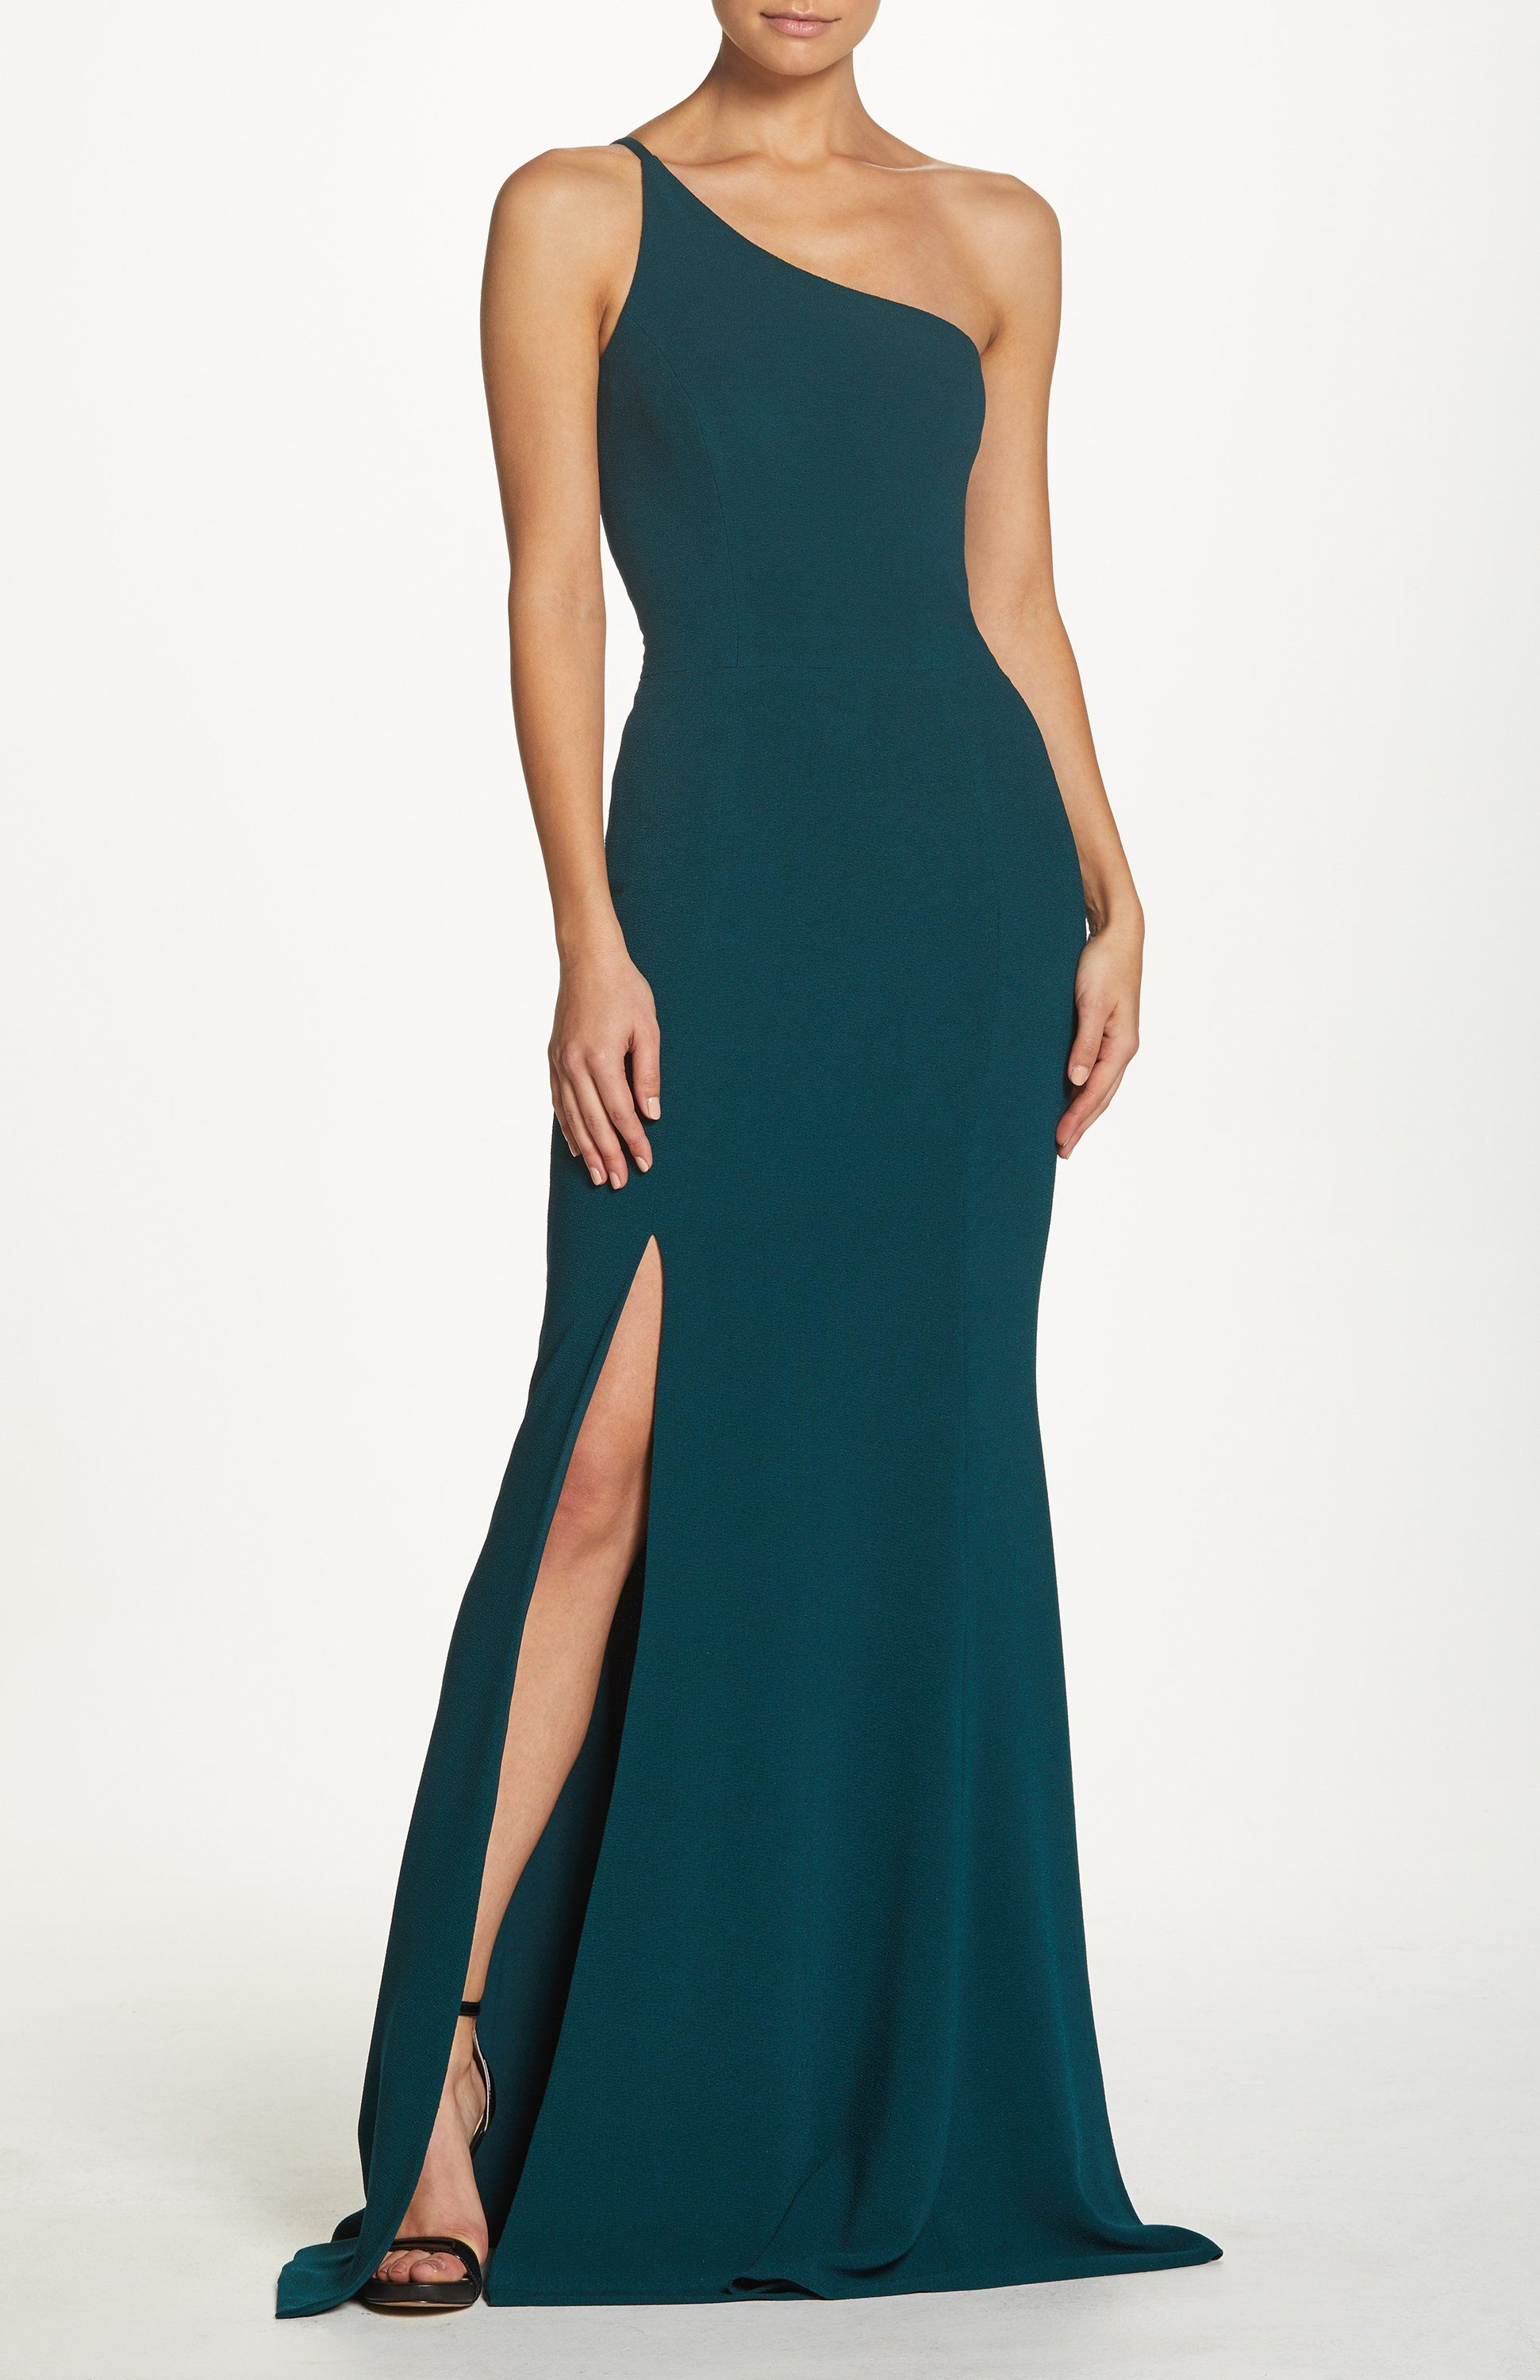 645d04987be Amy One Shoulder Mermaid Gown in 2019 | Wedding party dress inspo ...